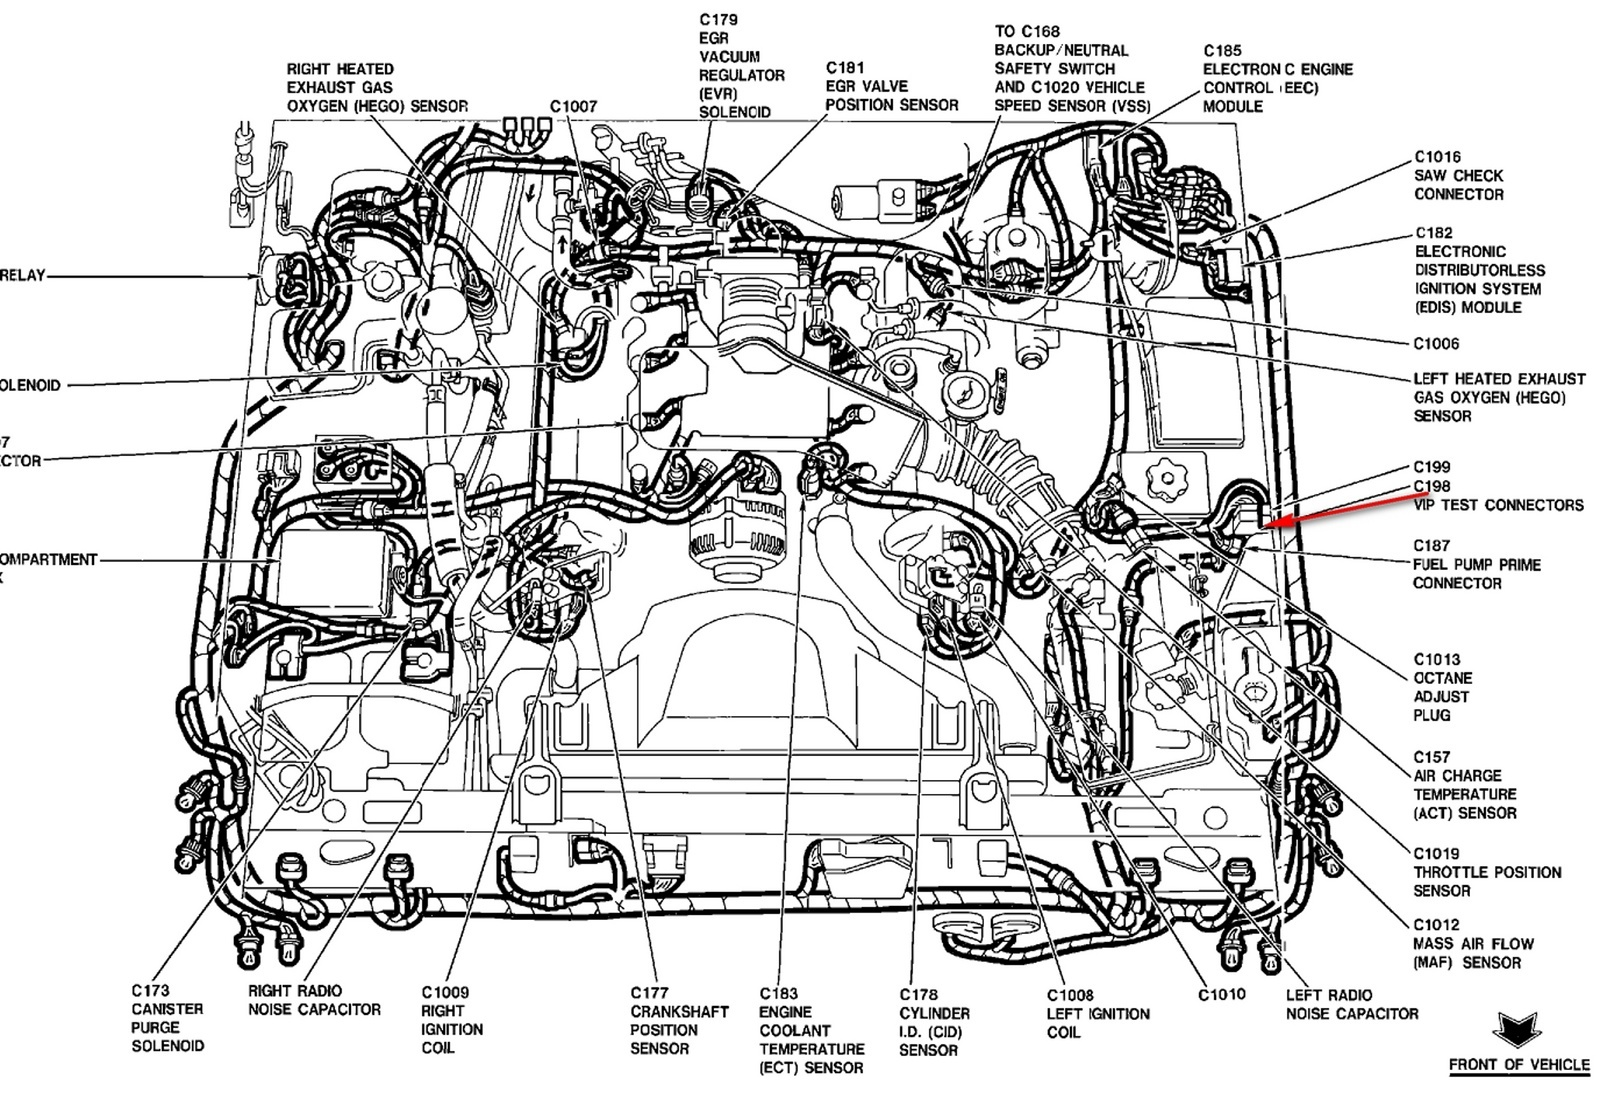 hight resolution of 99 tahoe engine diagram wiring diagram data val 07 tahoe engine diagram 99 tahoe engine diagram